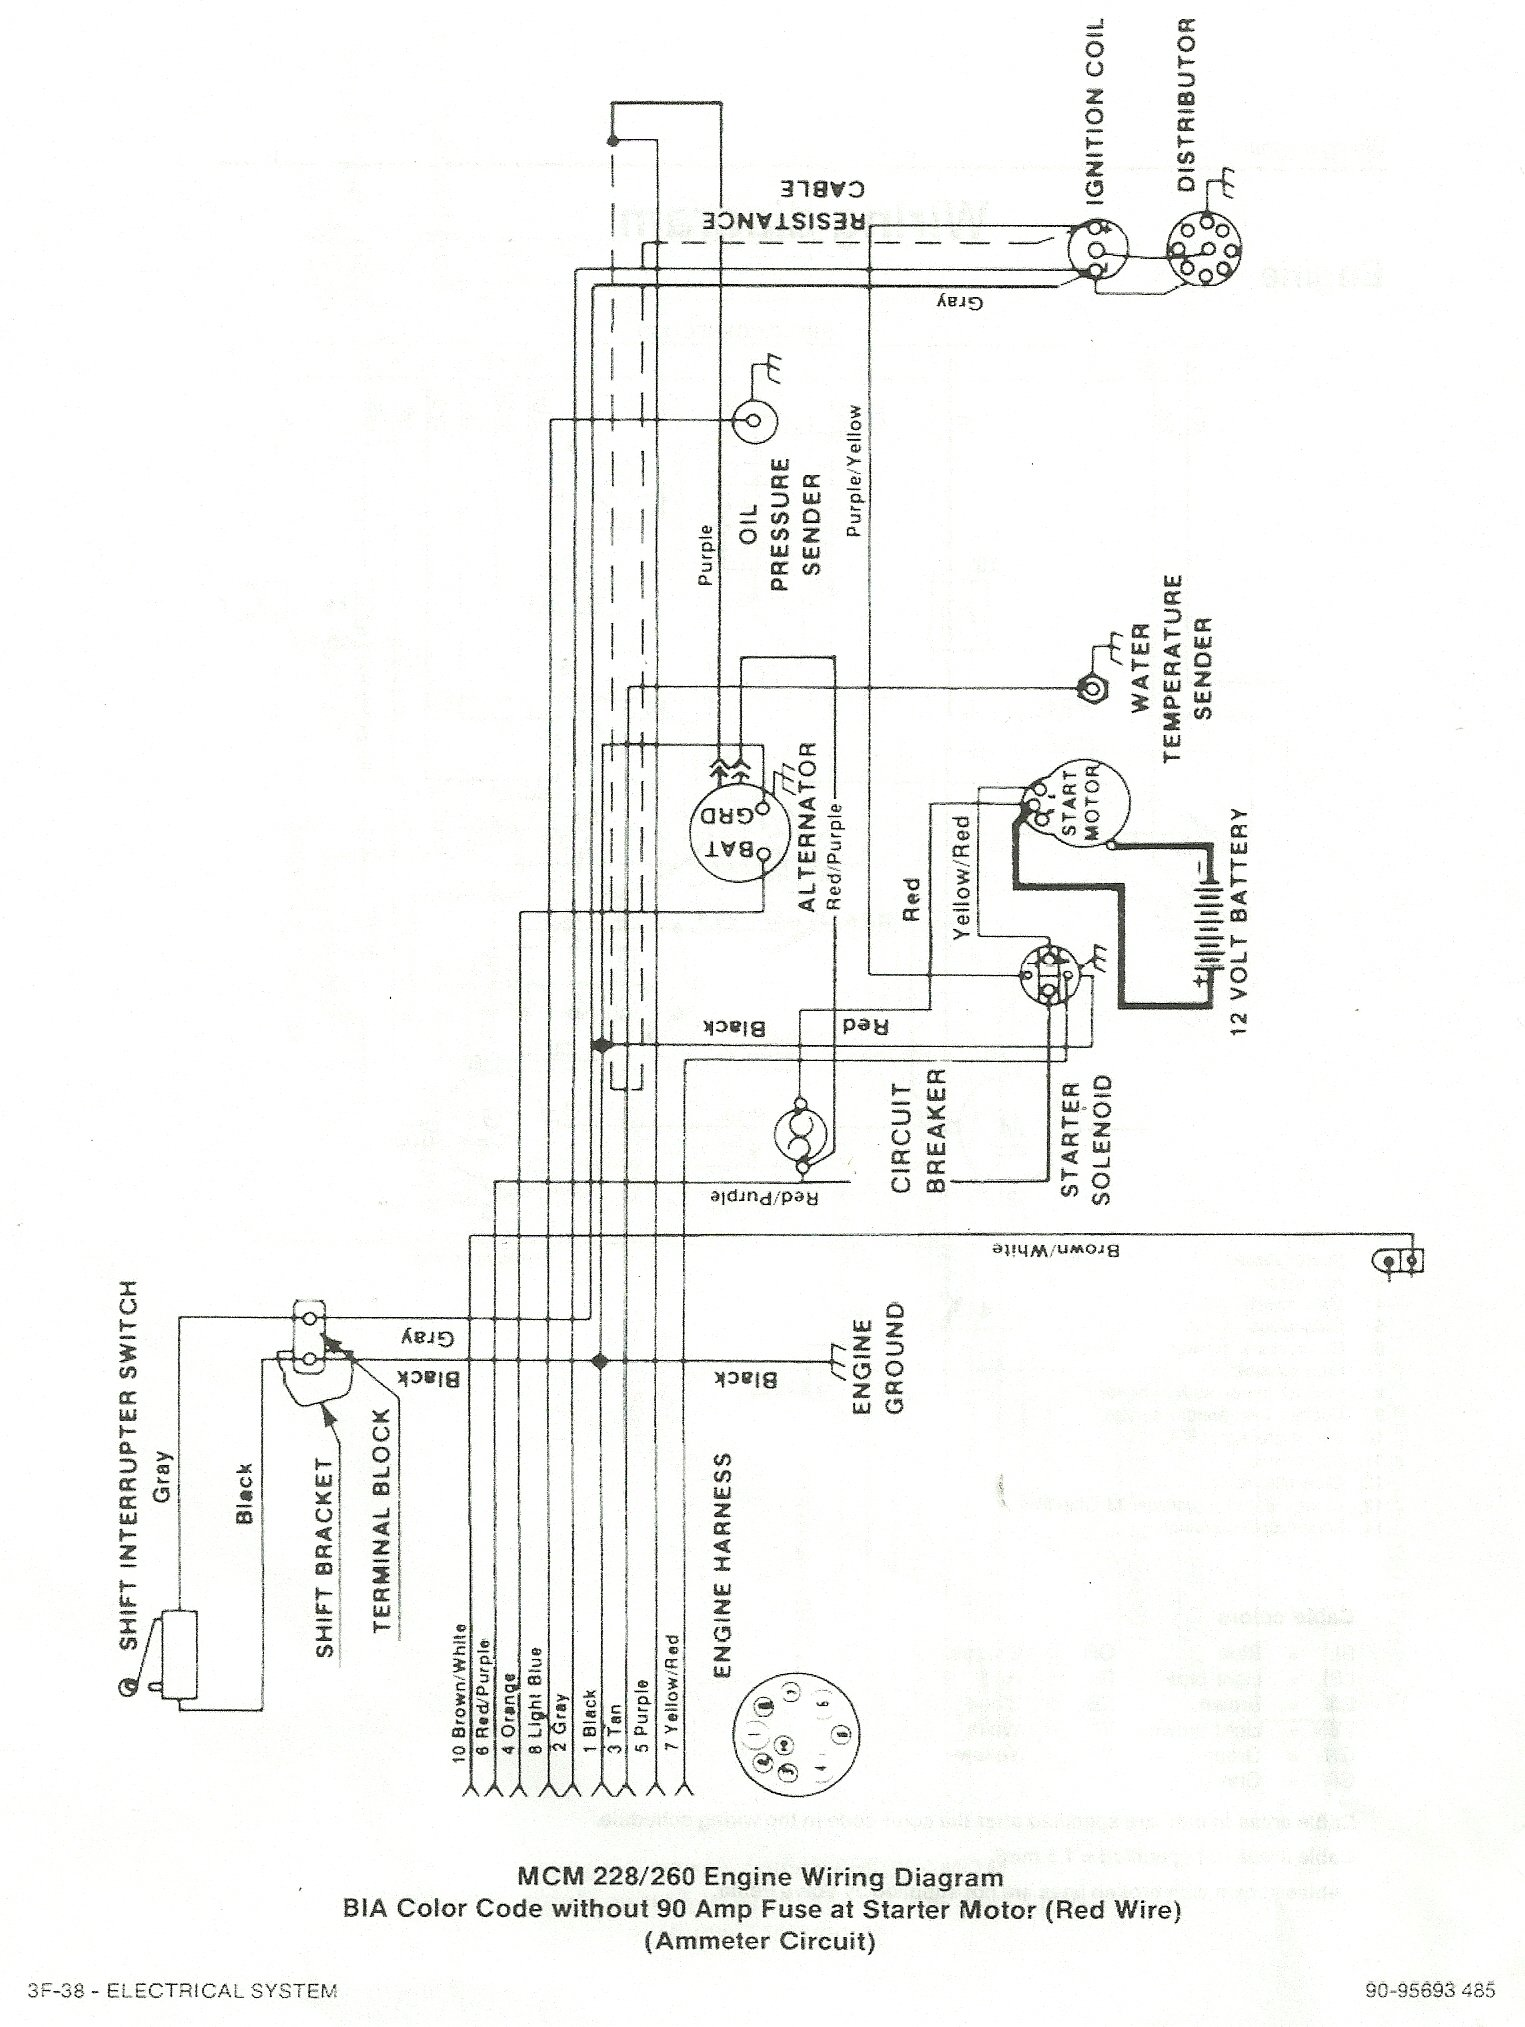 help me understand this wiring diagram